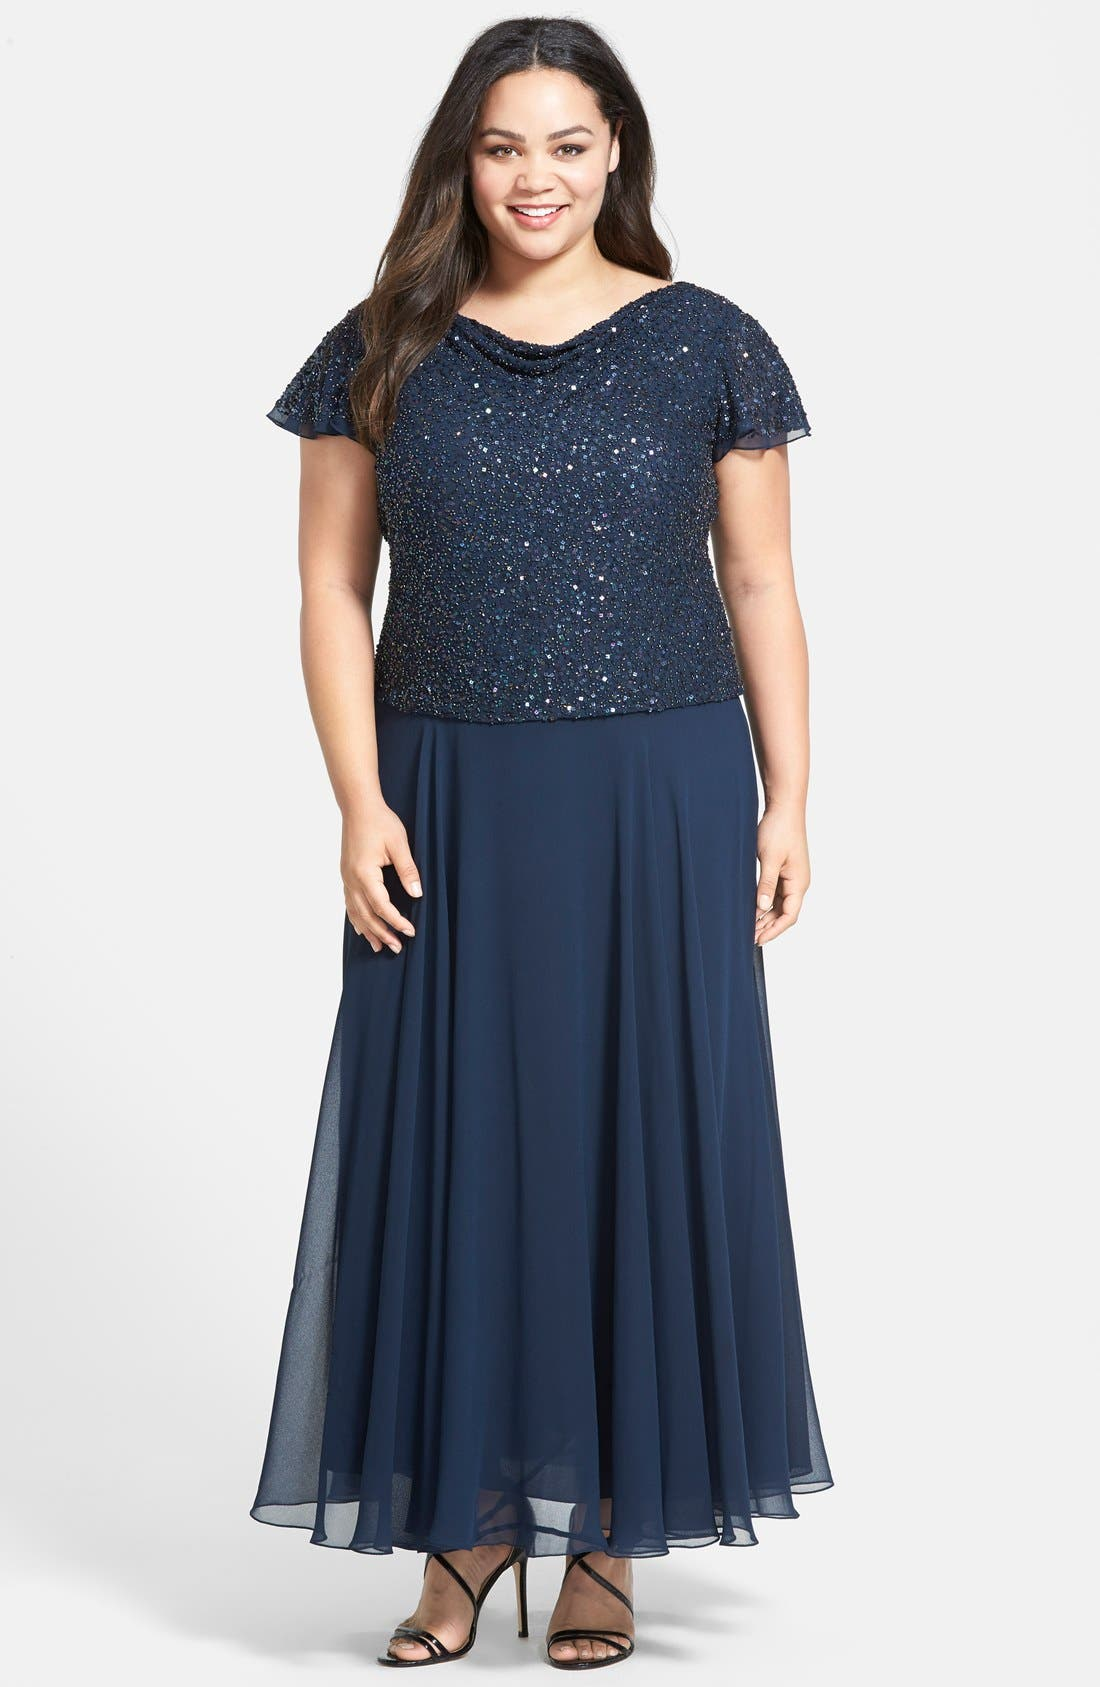 Alternate Image 1 Selected - J Kara Mock Two Piece Sequin & Chiffon Gown (Plus Size)